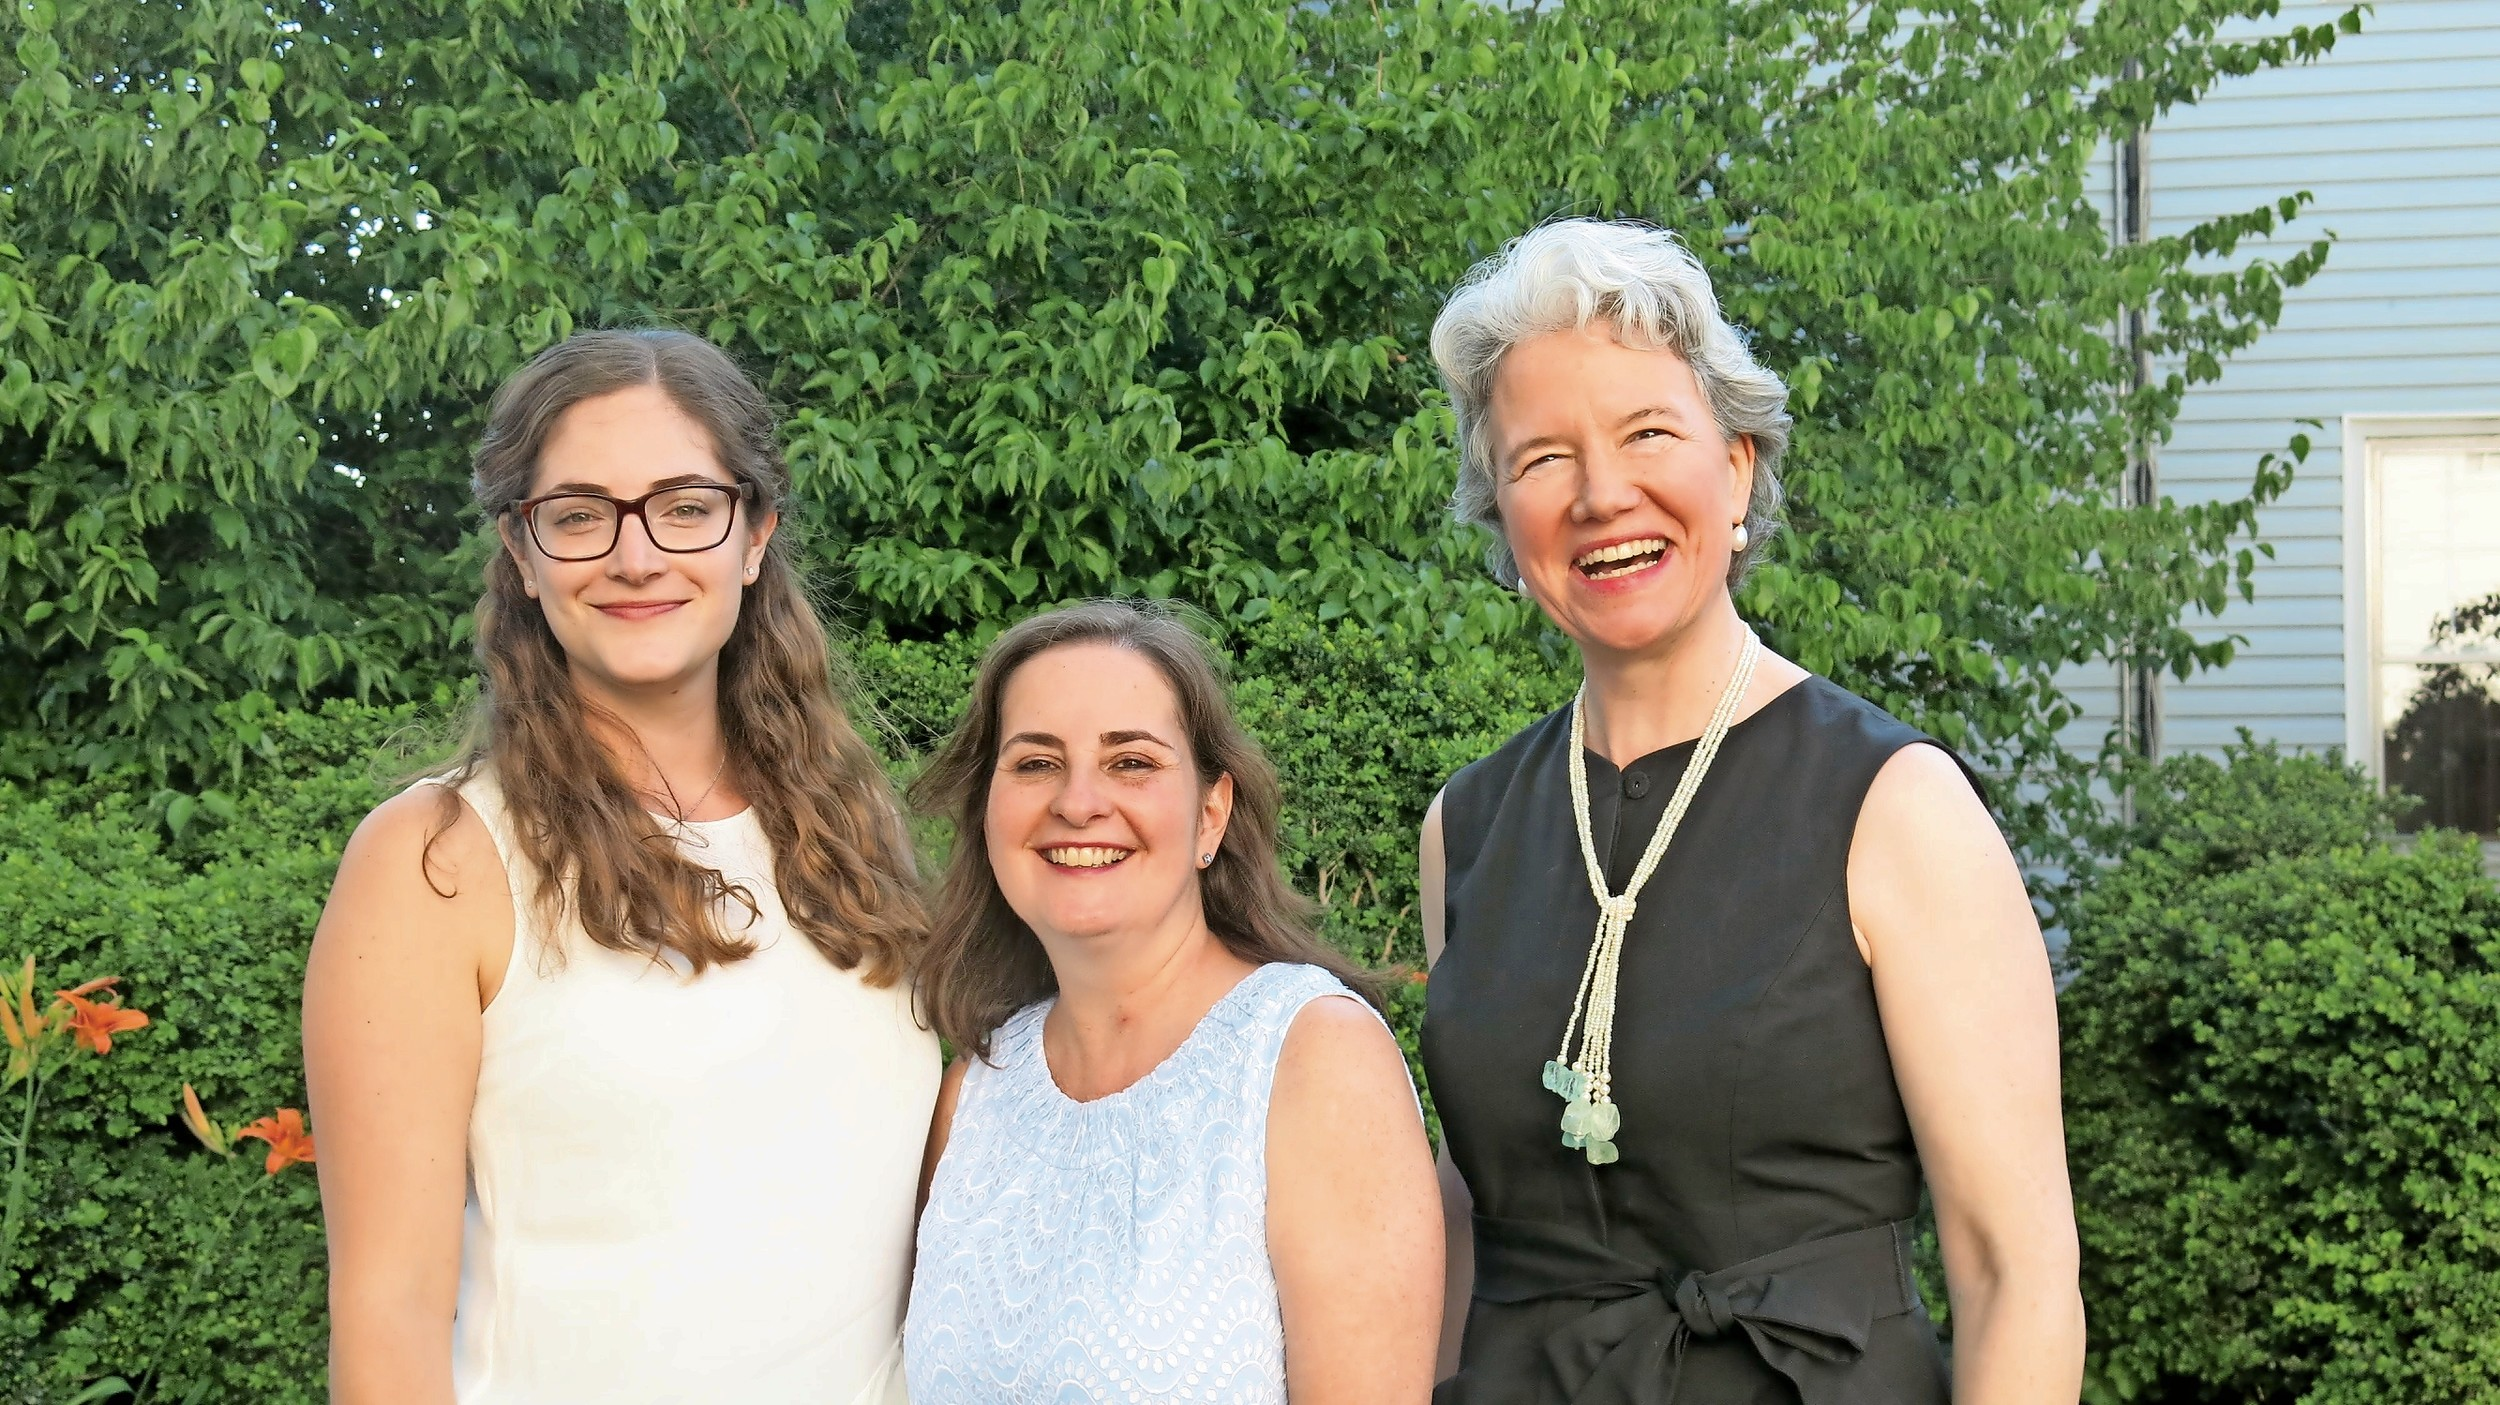 Jessica Pearl, Theresa Skvarla and Harriet Gerard Clark, of Raynham Hall, were pleased with the attendance at the reception.